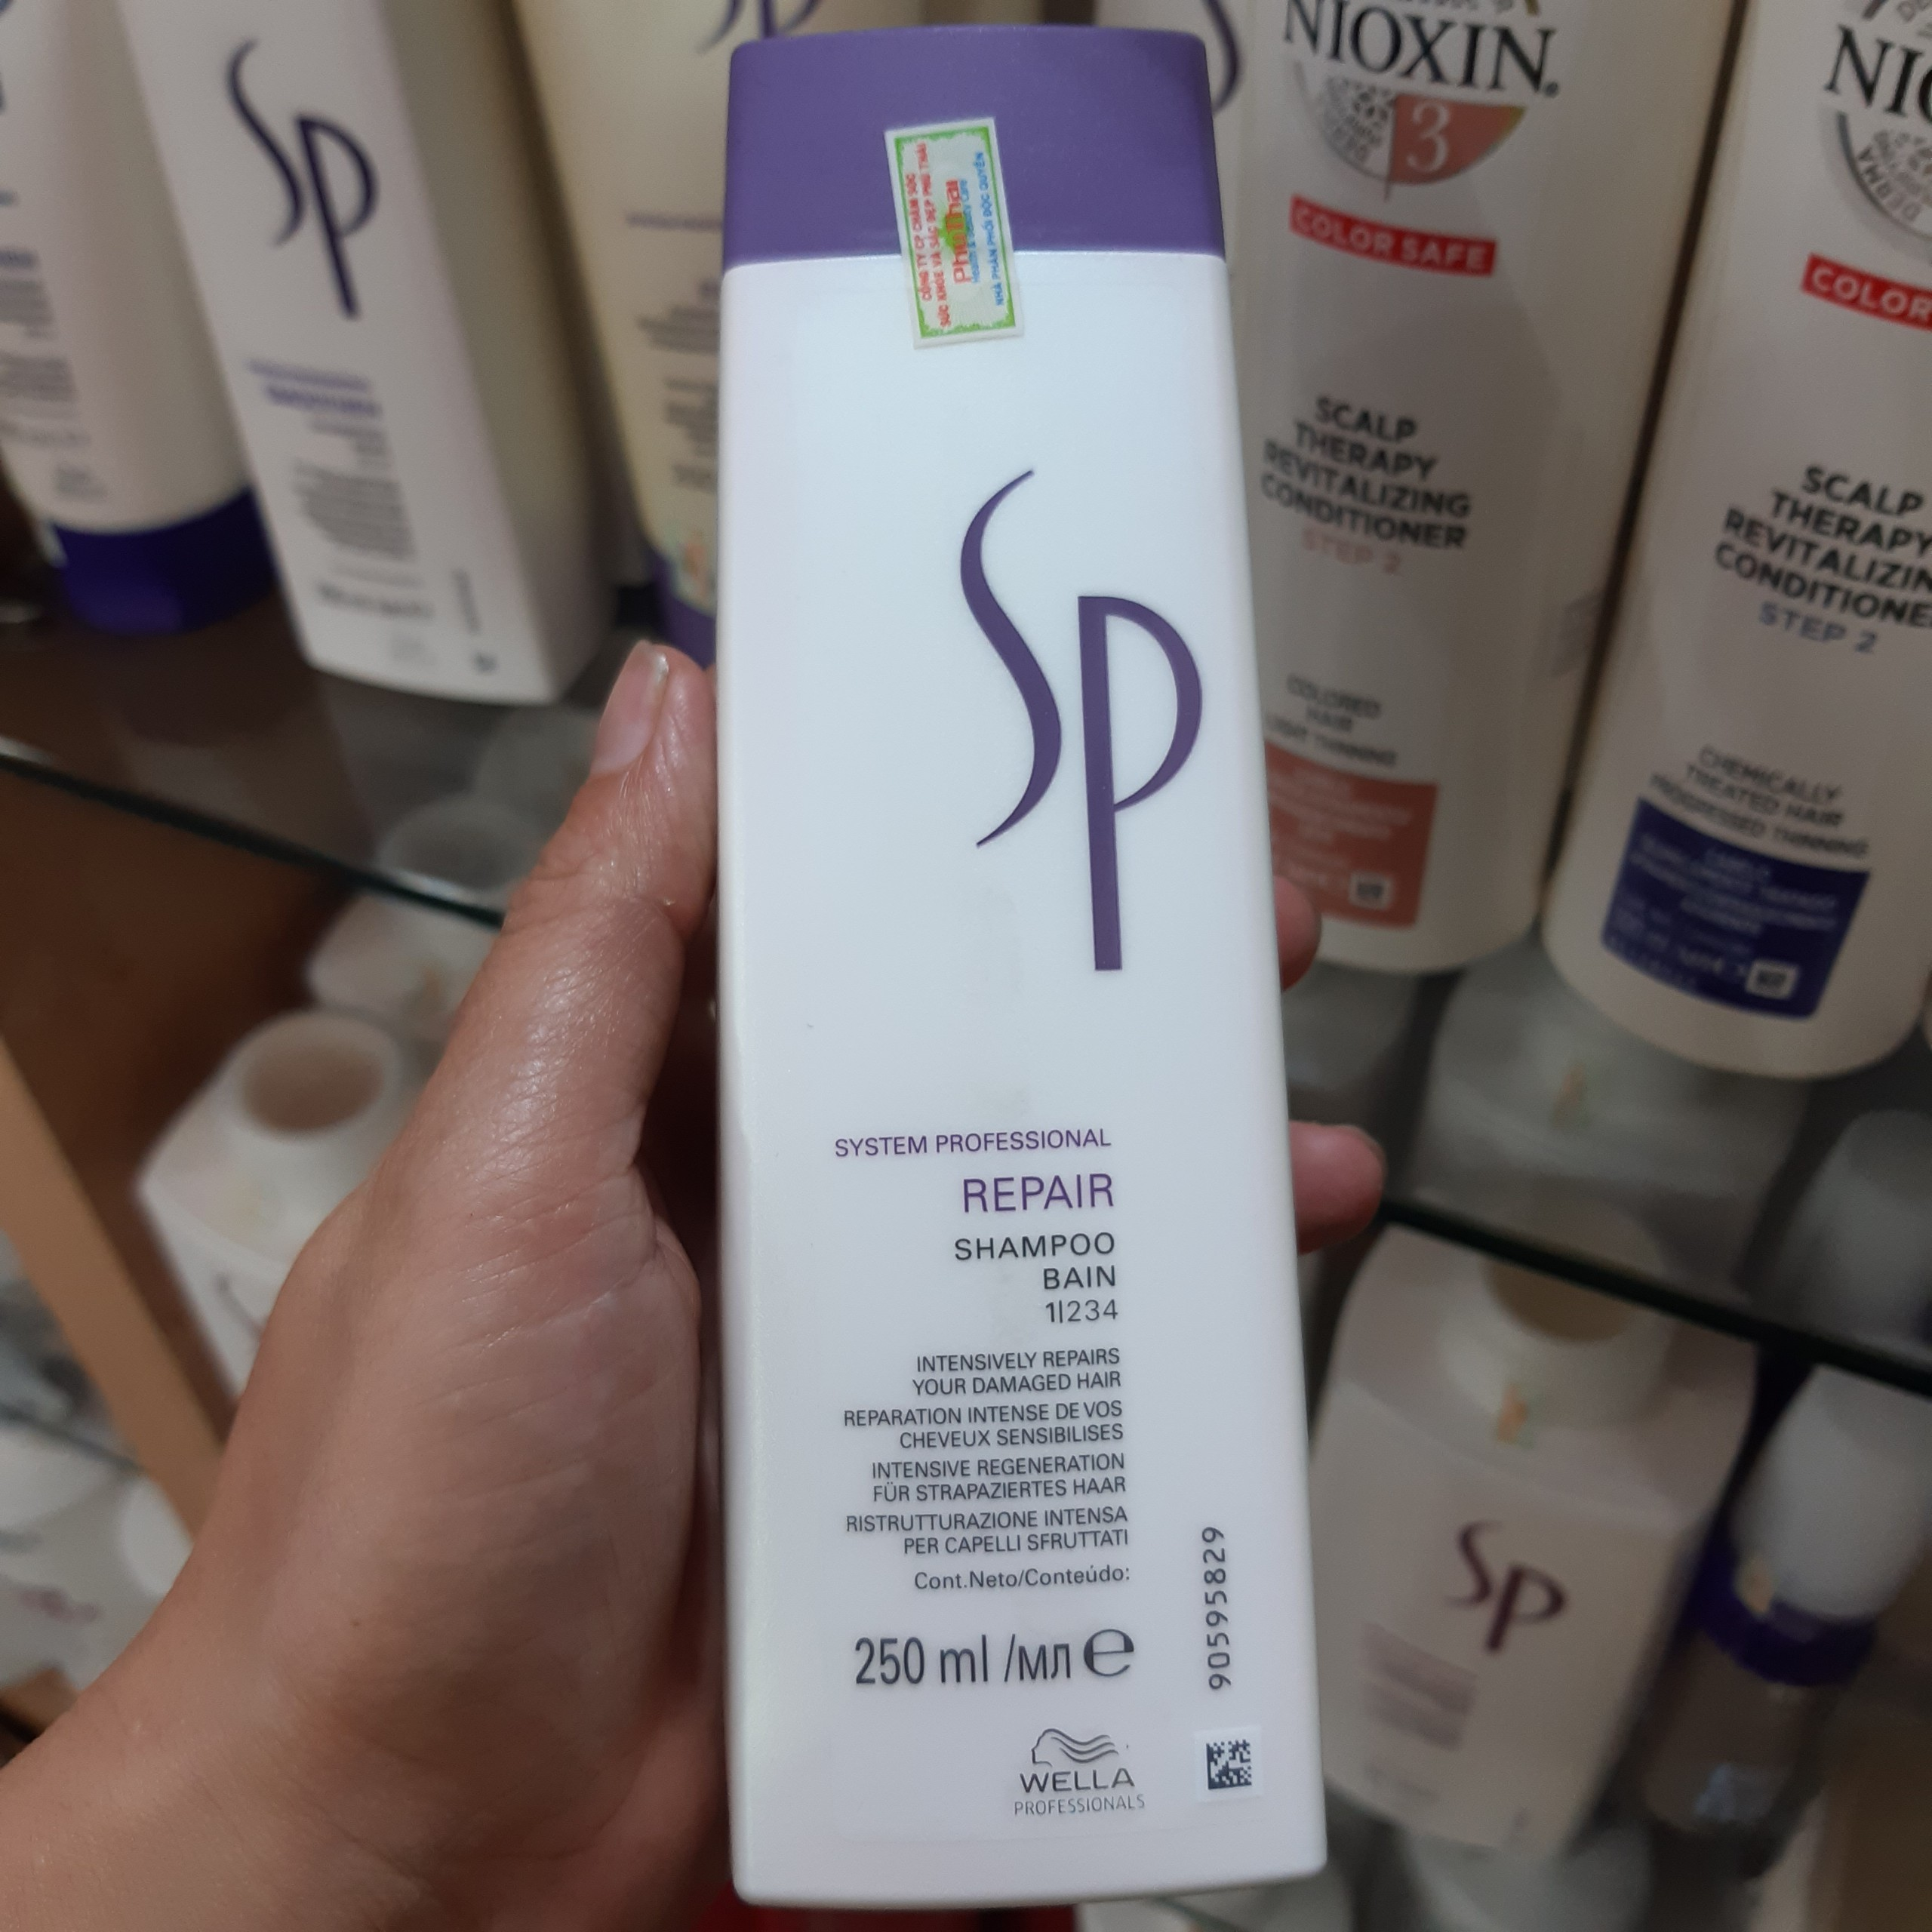 Dầu Gội SP Wella Repair 250ml